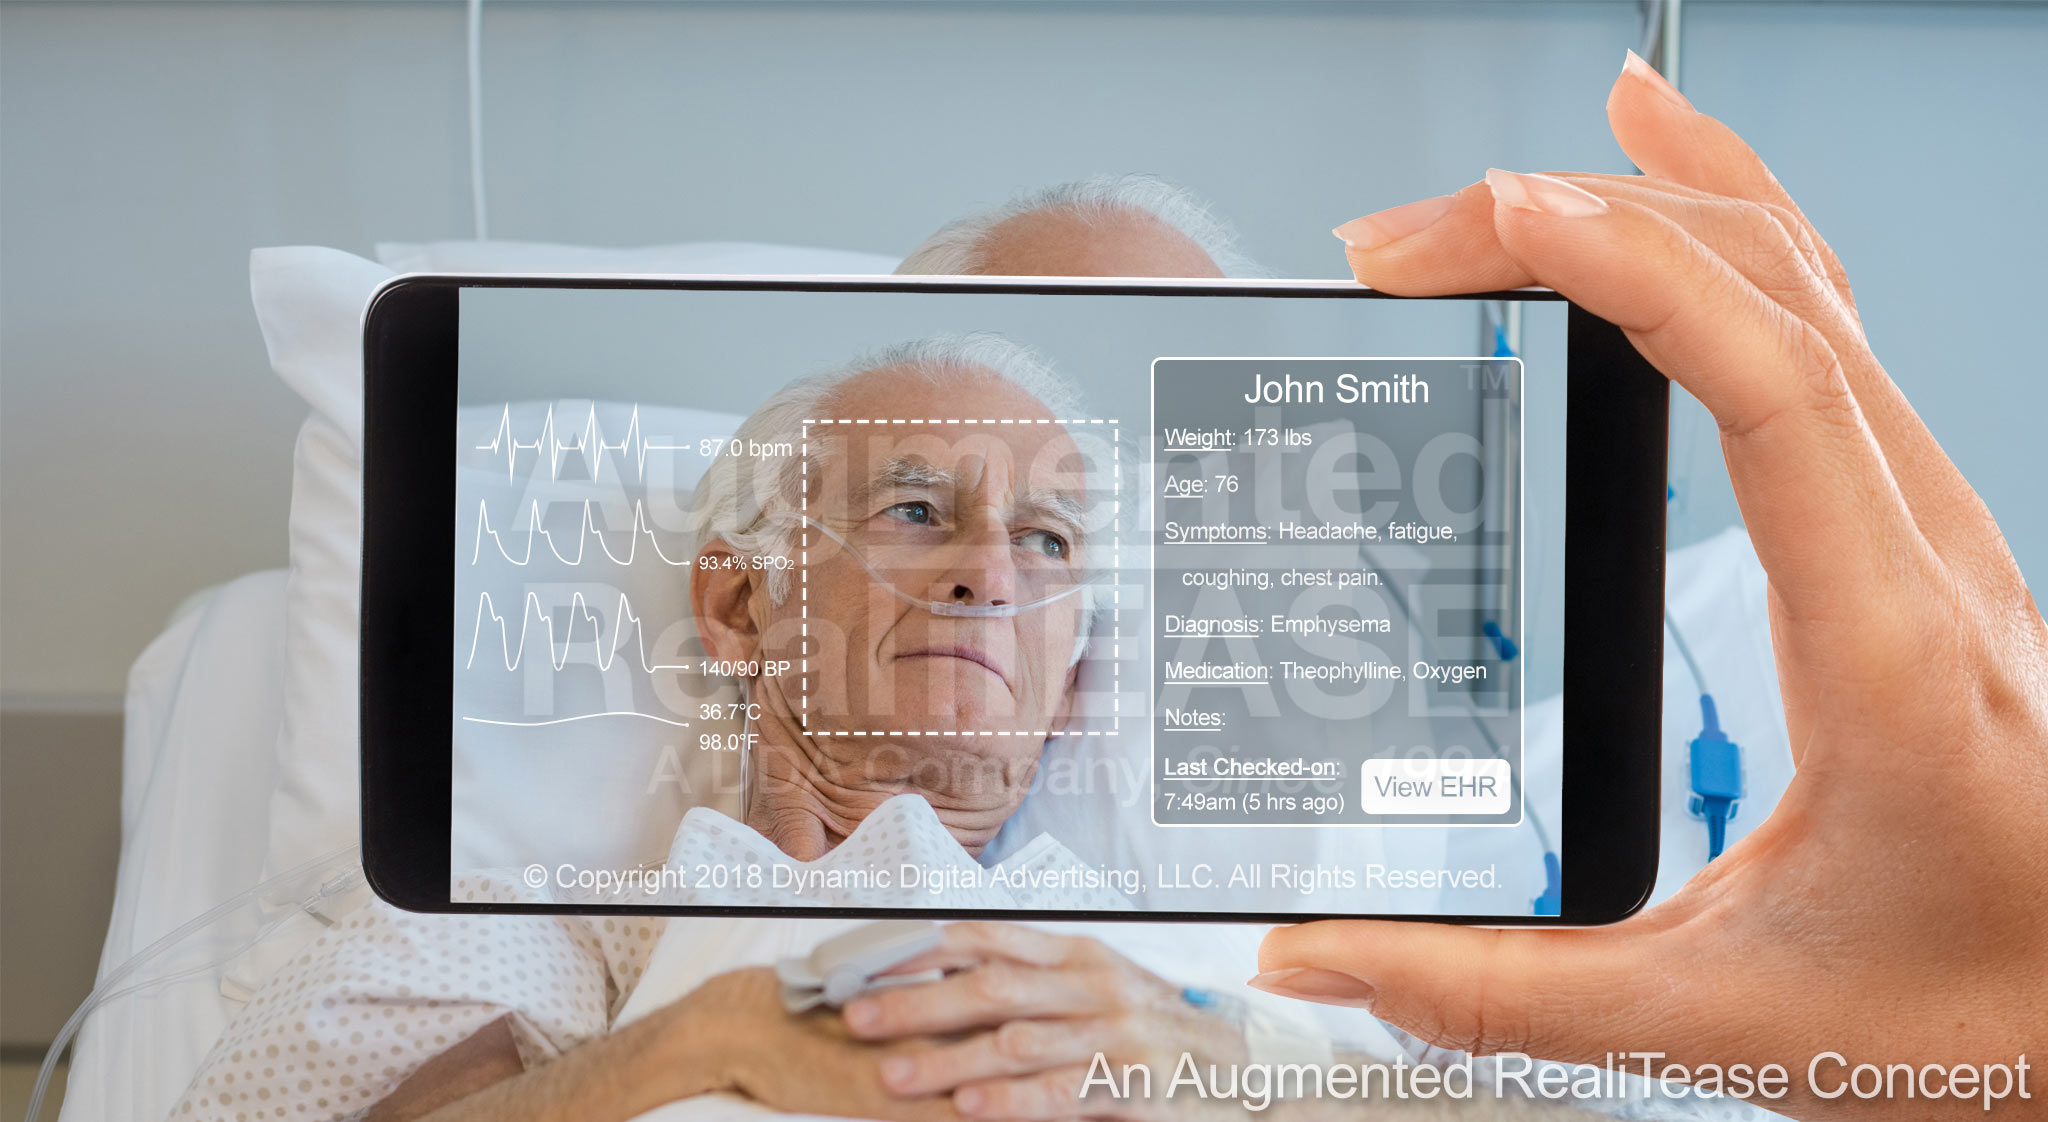 Patient Information Augmented Reality Application